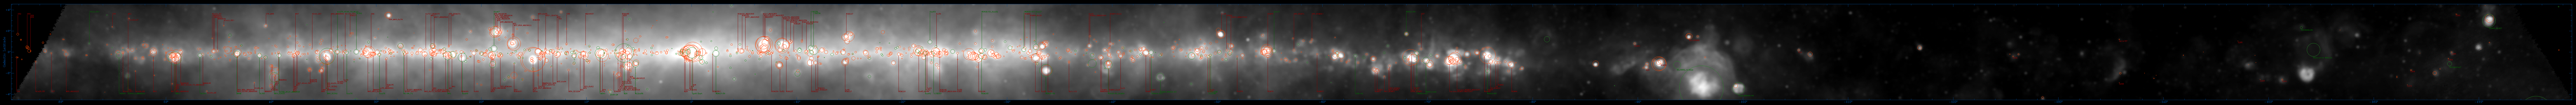 Annotated CHIPASS Galactic Plane image.